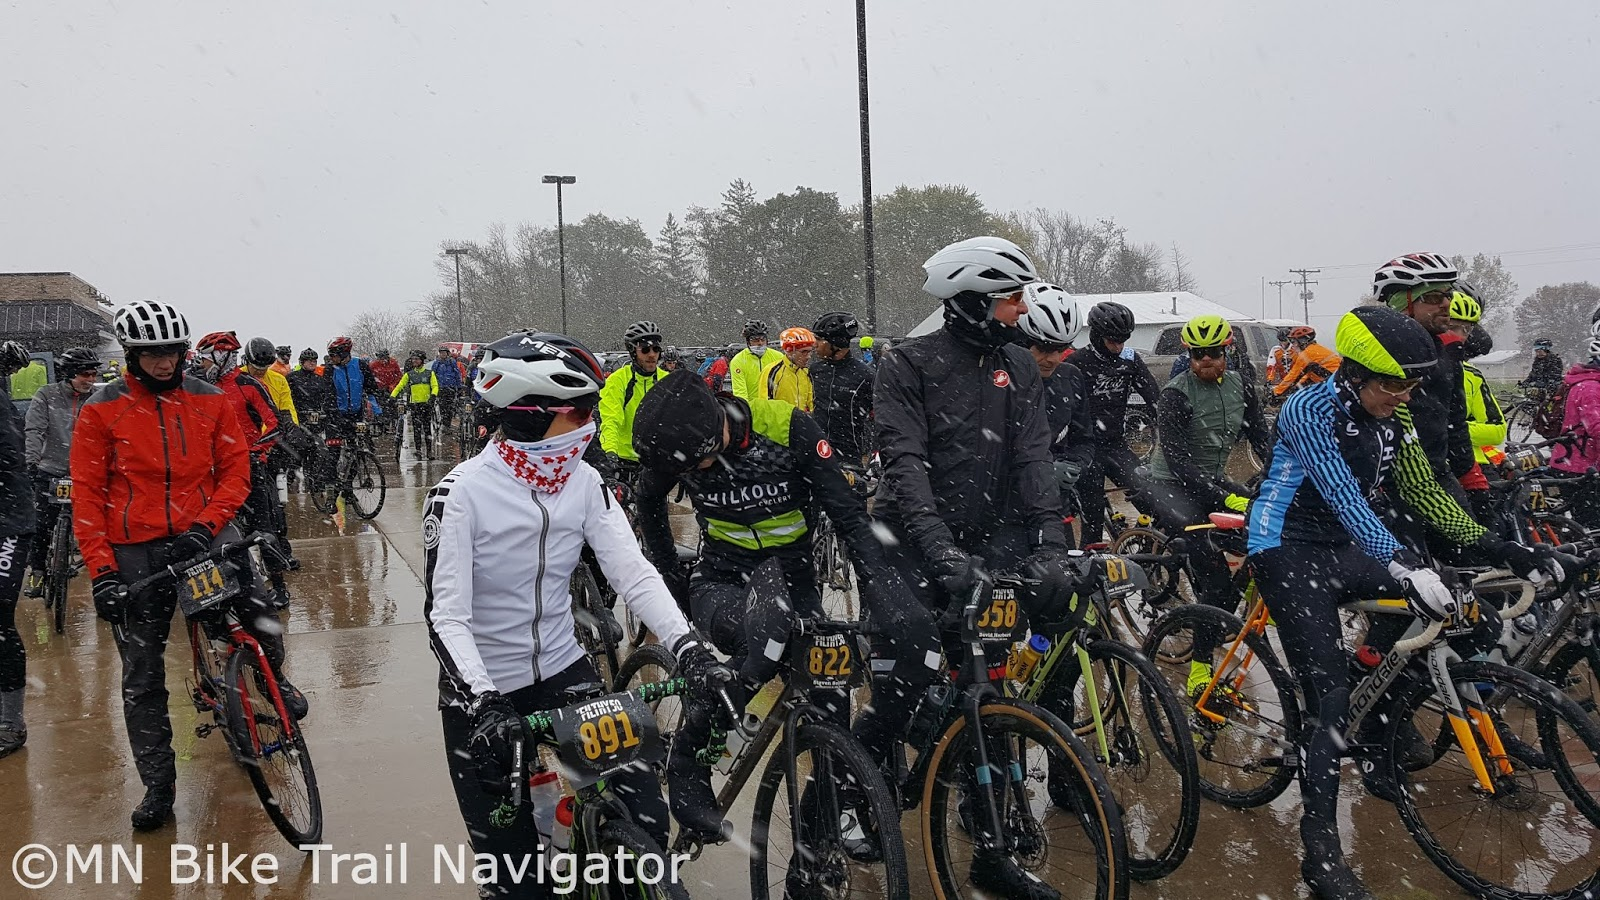 Cycling Events Mn Thanksgiving 2020.Mn Bike Trail Navigator 2019 Minnesota Gravel Events